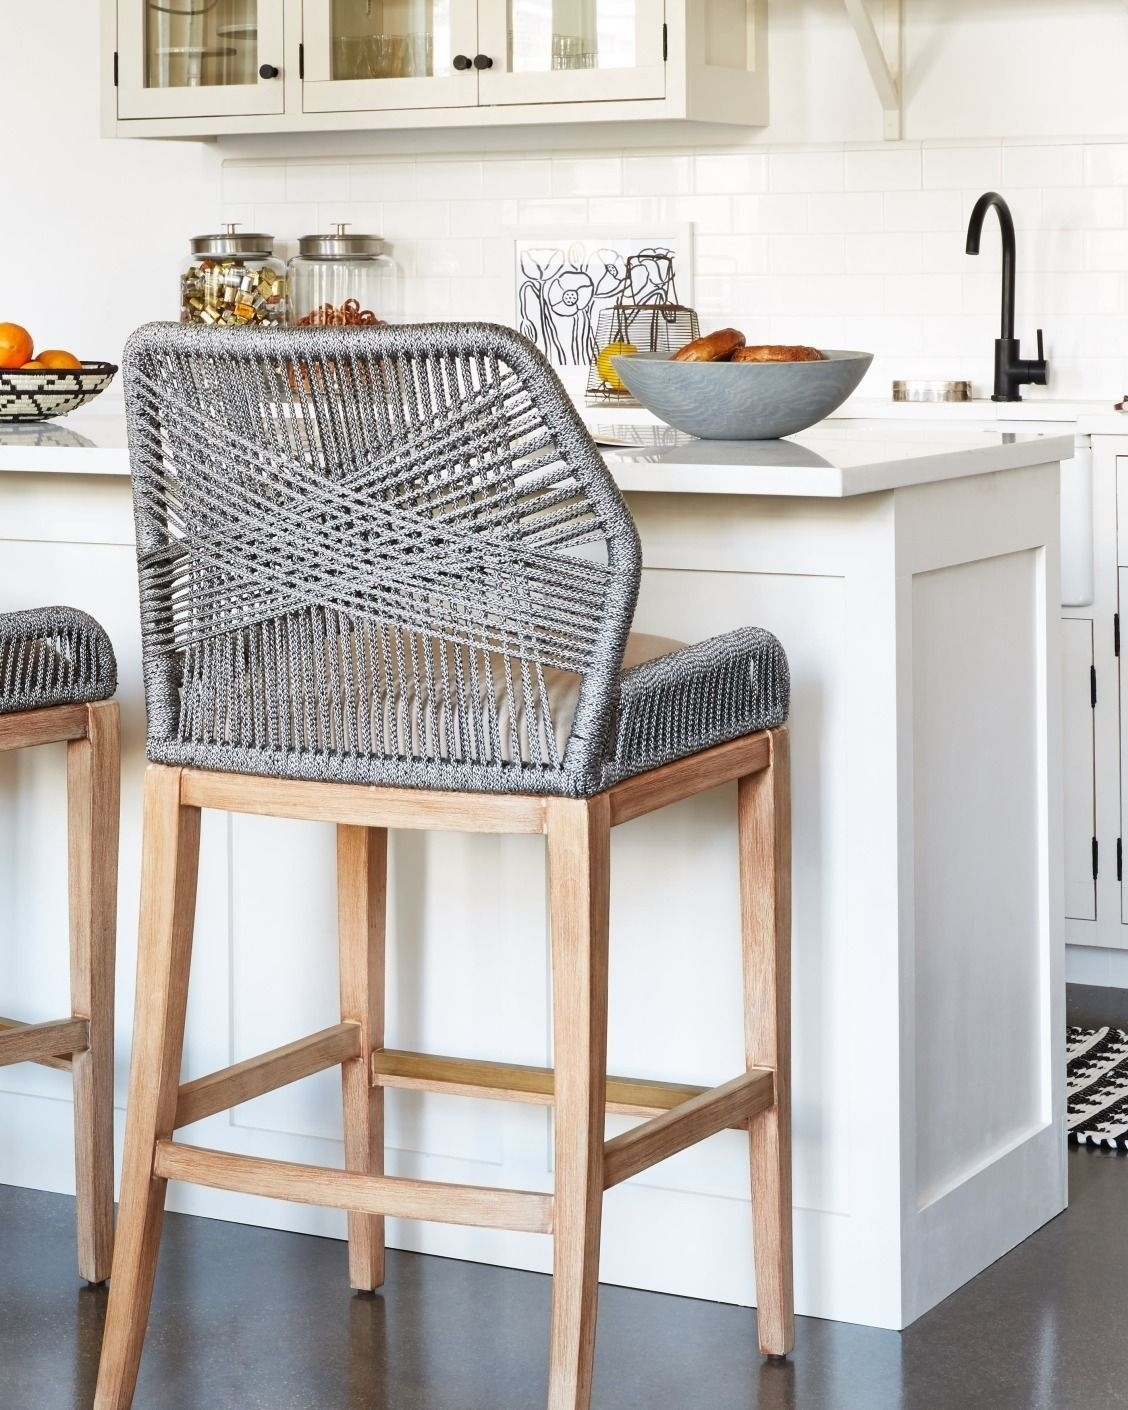 These Woven Rope Counter Stools Are Such A Fun, Unexpected Kitchen For Newest Laurent 7 Piece Counter Sets With Wood Counterstools (Image 15 of 20)